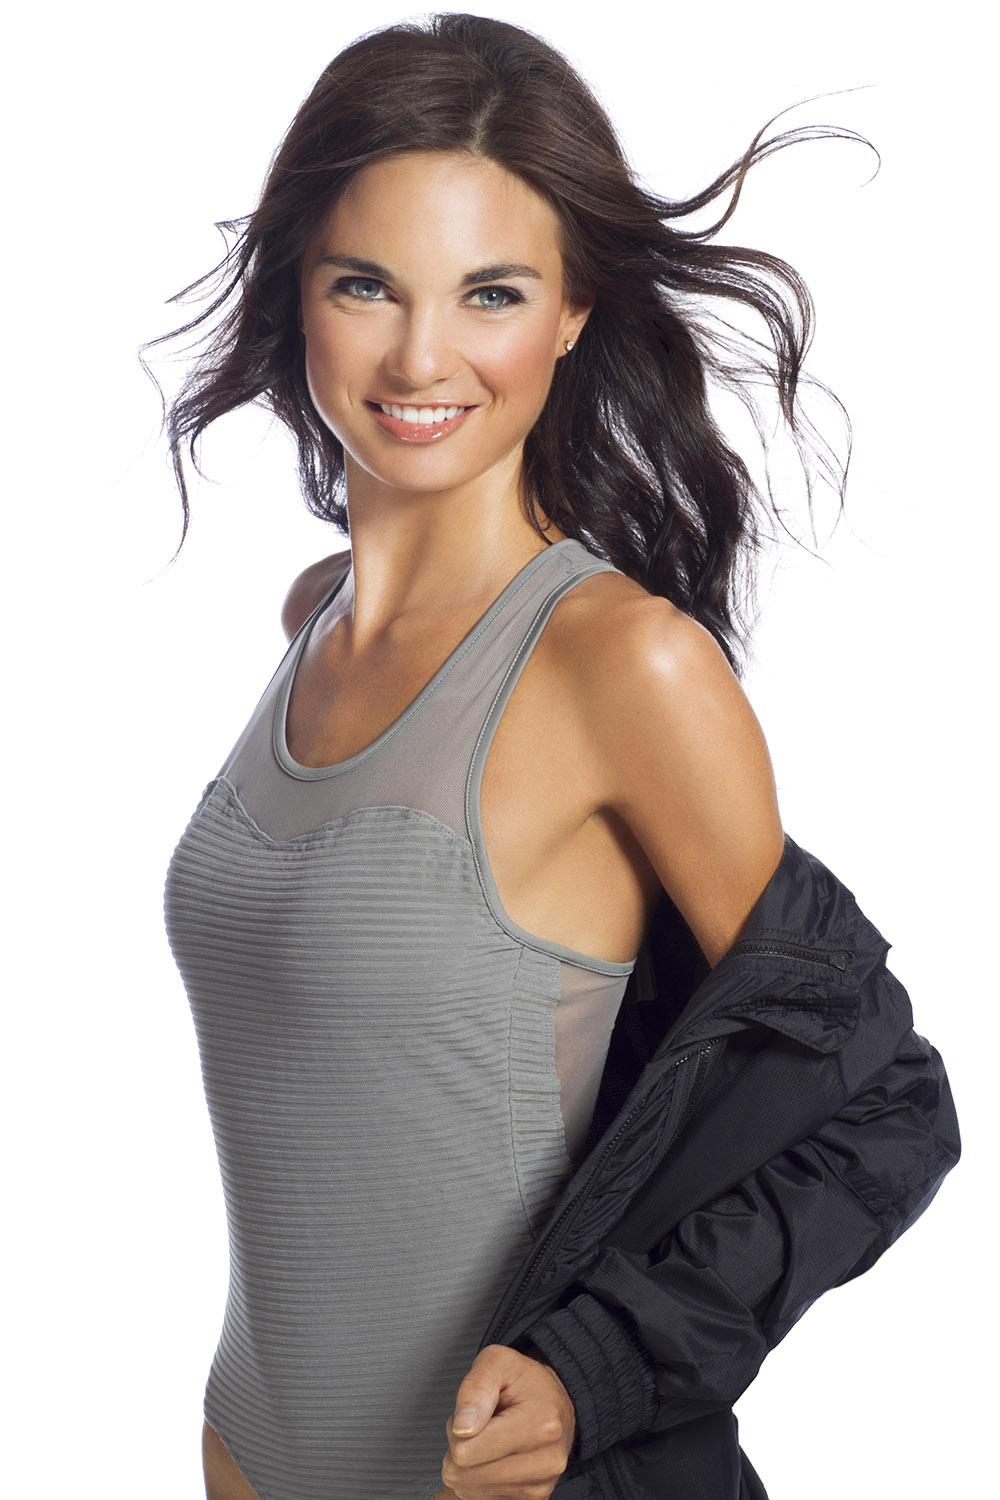 Adult Strength Reviews Adult Strength Reviews new images